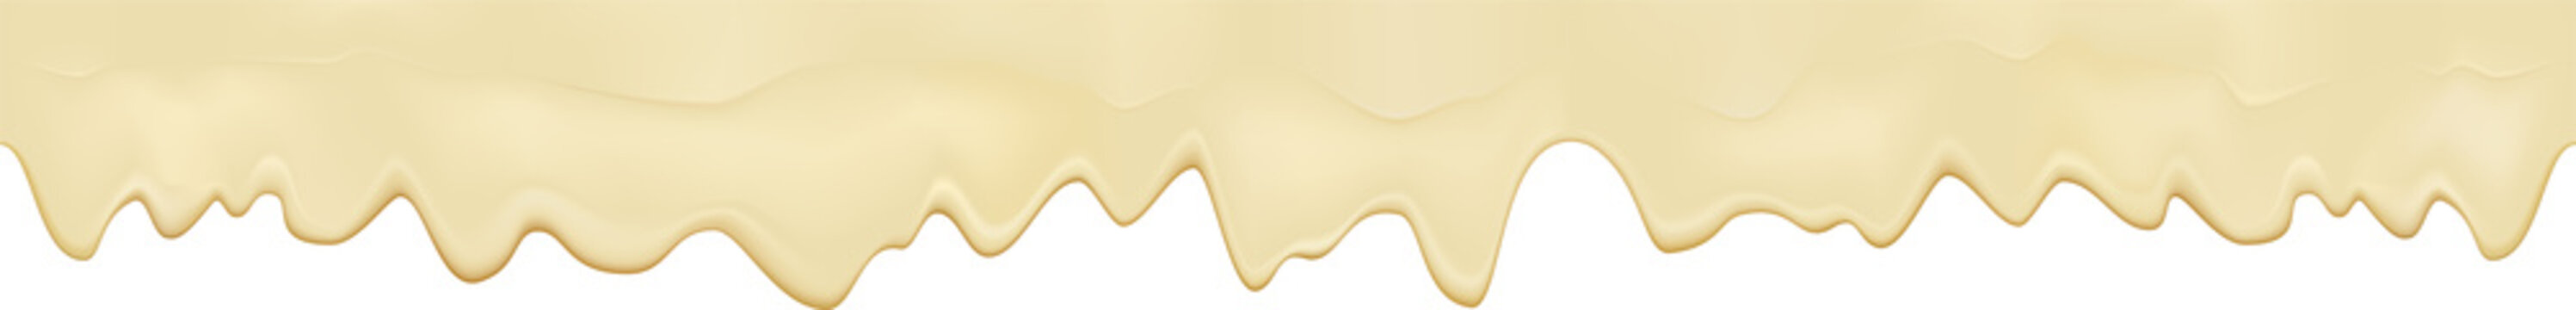 Liquid melted cheese white seamless texture. Mayonnaise texture isolated on white background. Cream pouring border. Vector realistic illustration.